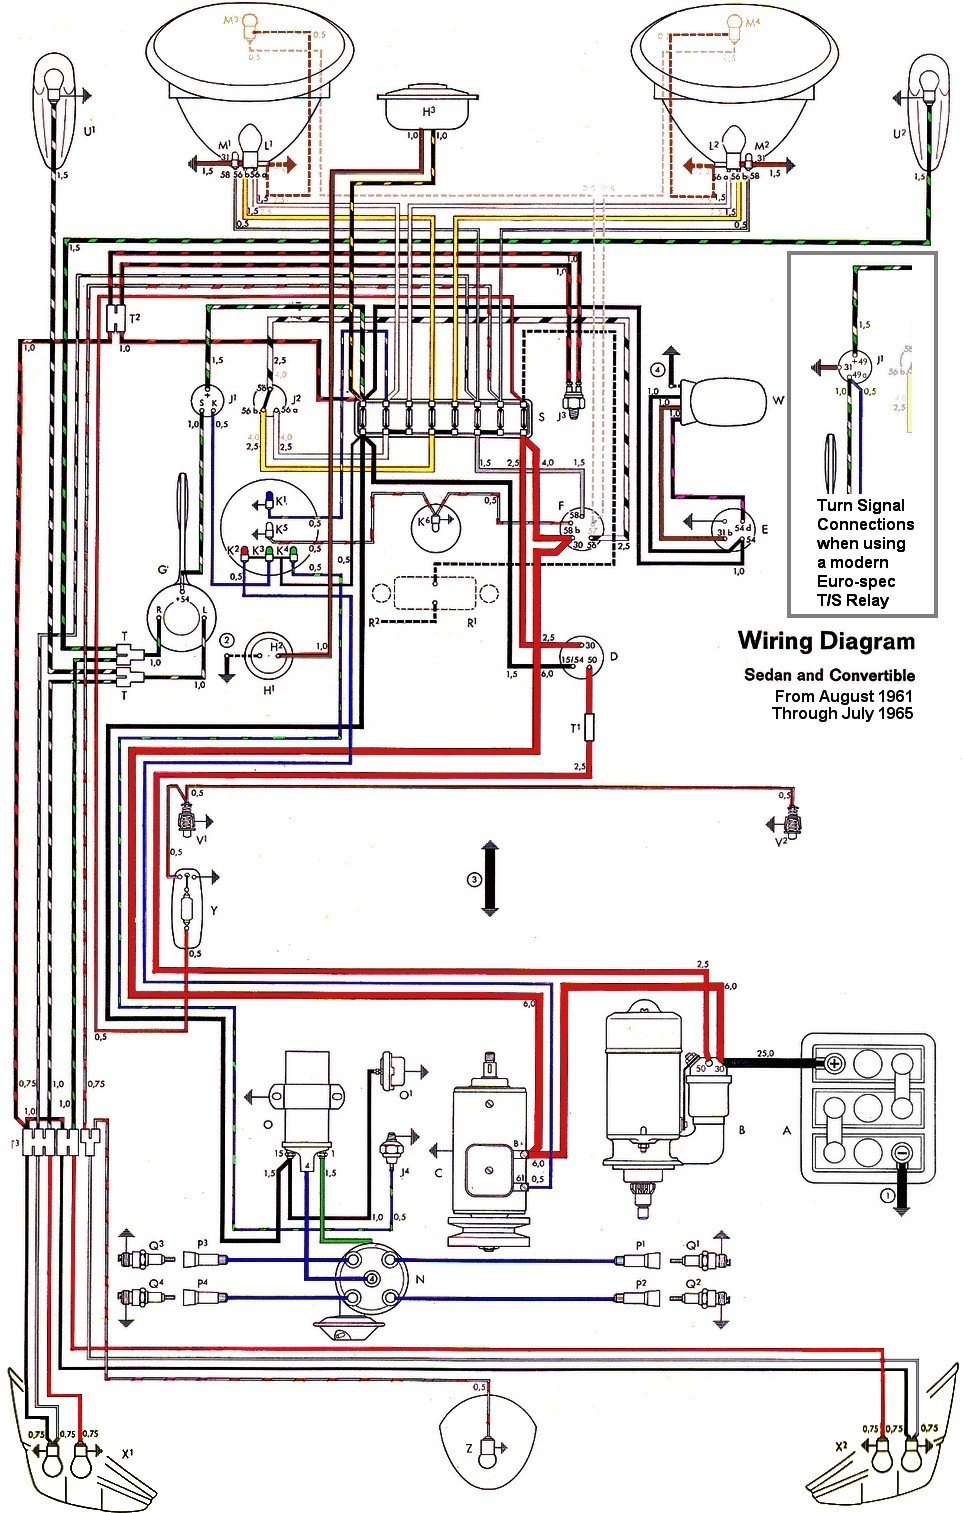 1979 Vw Wiring Diagram Easy Rules Of 1982 Rabbit Diesel 1970 Schematics Rh Mychampagnedaze Com Beetle Convertible Fuel Injection